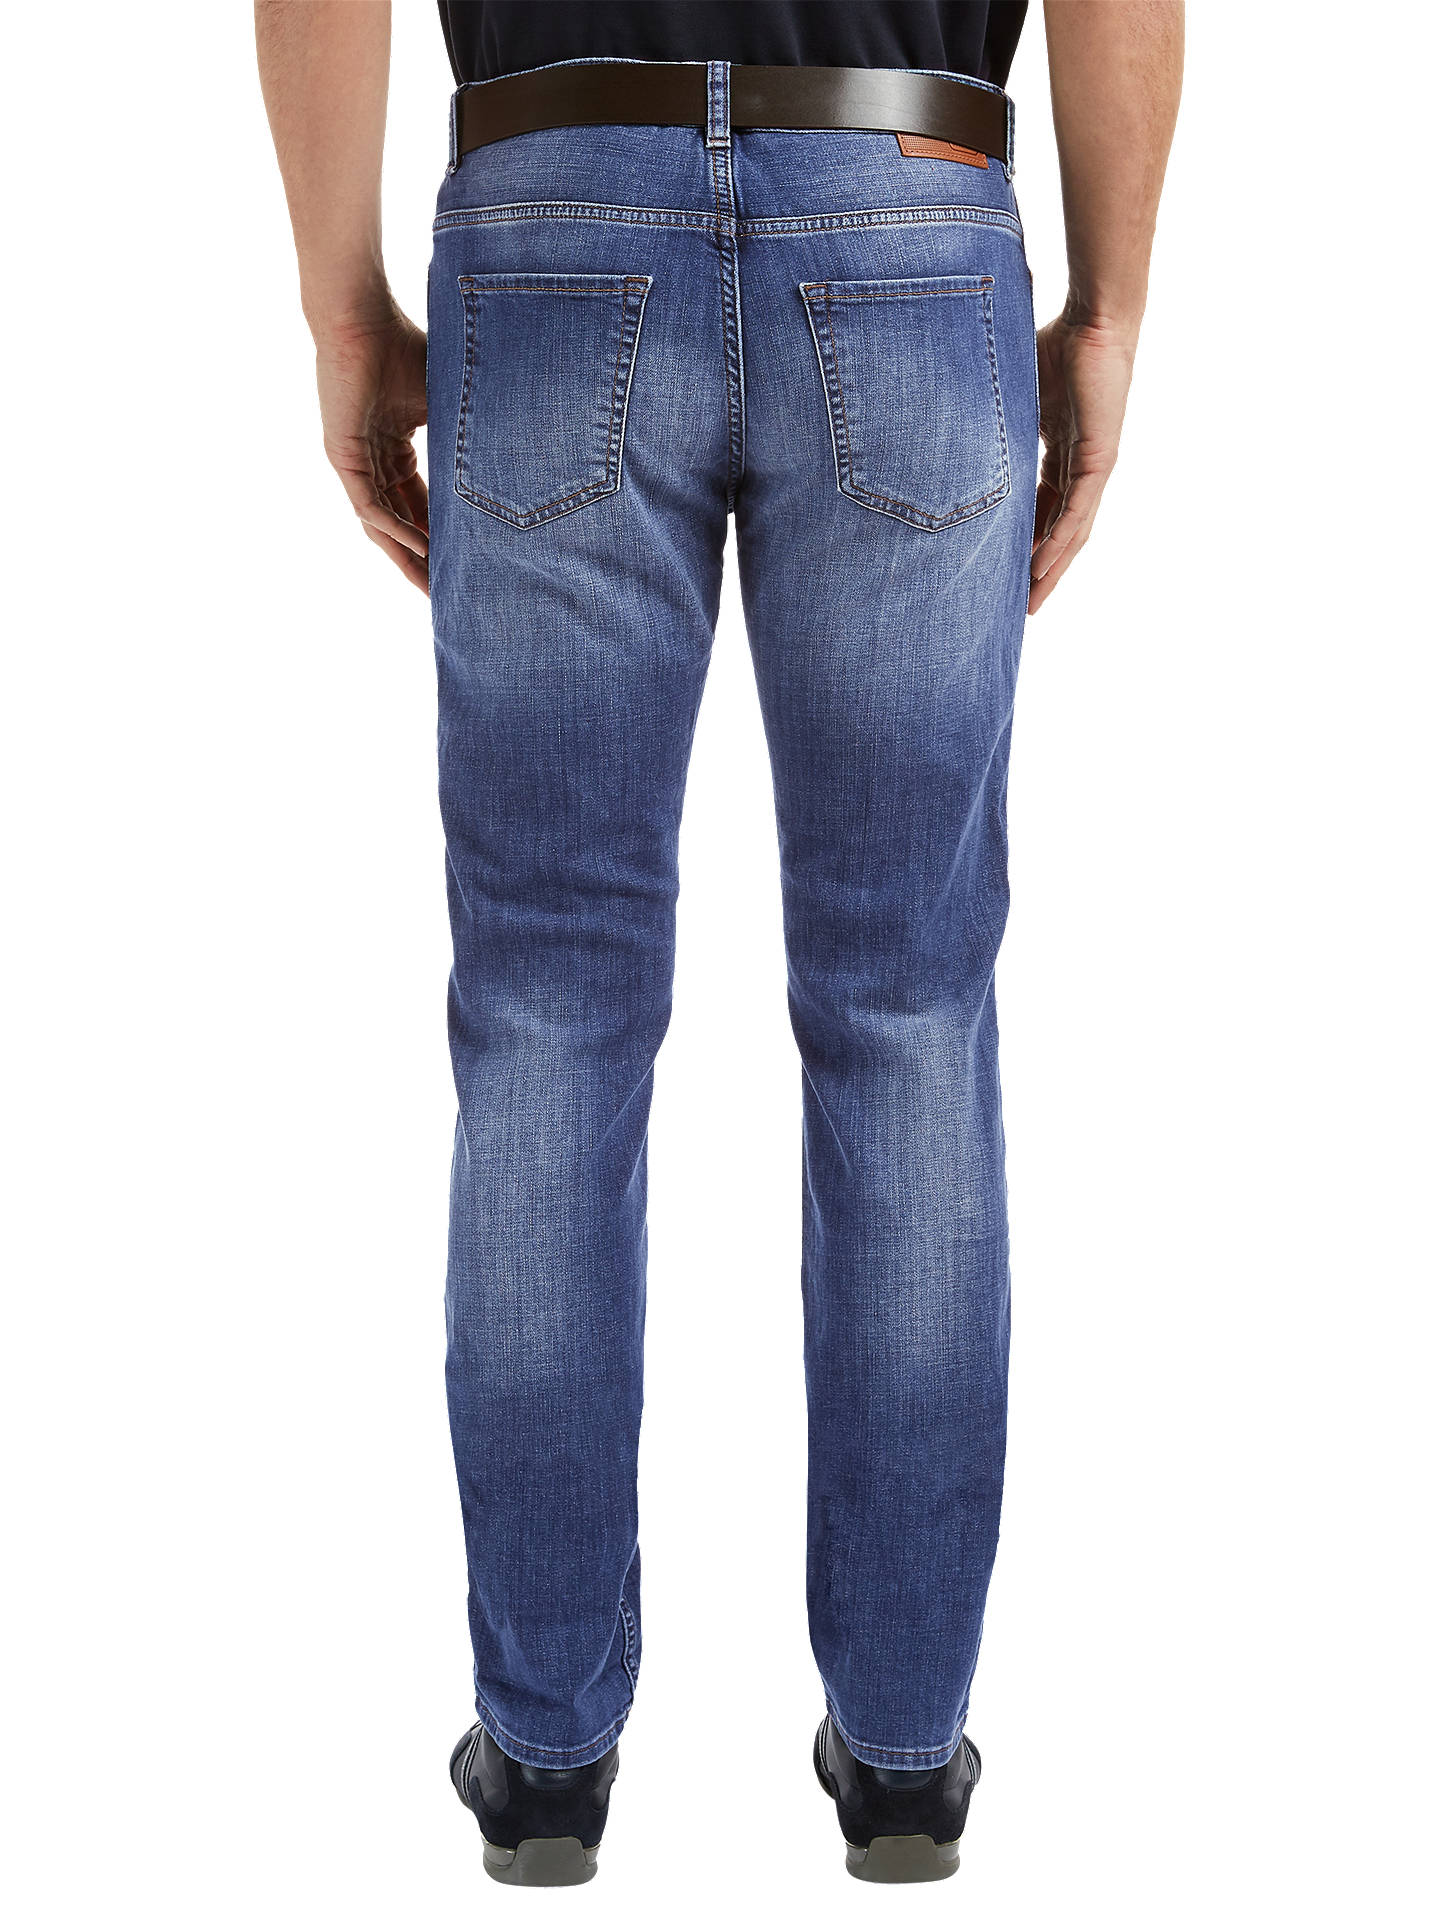 BuyBOSS Green Delaware Jeans, Medium Blue, 30R Online at johnlewis.com